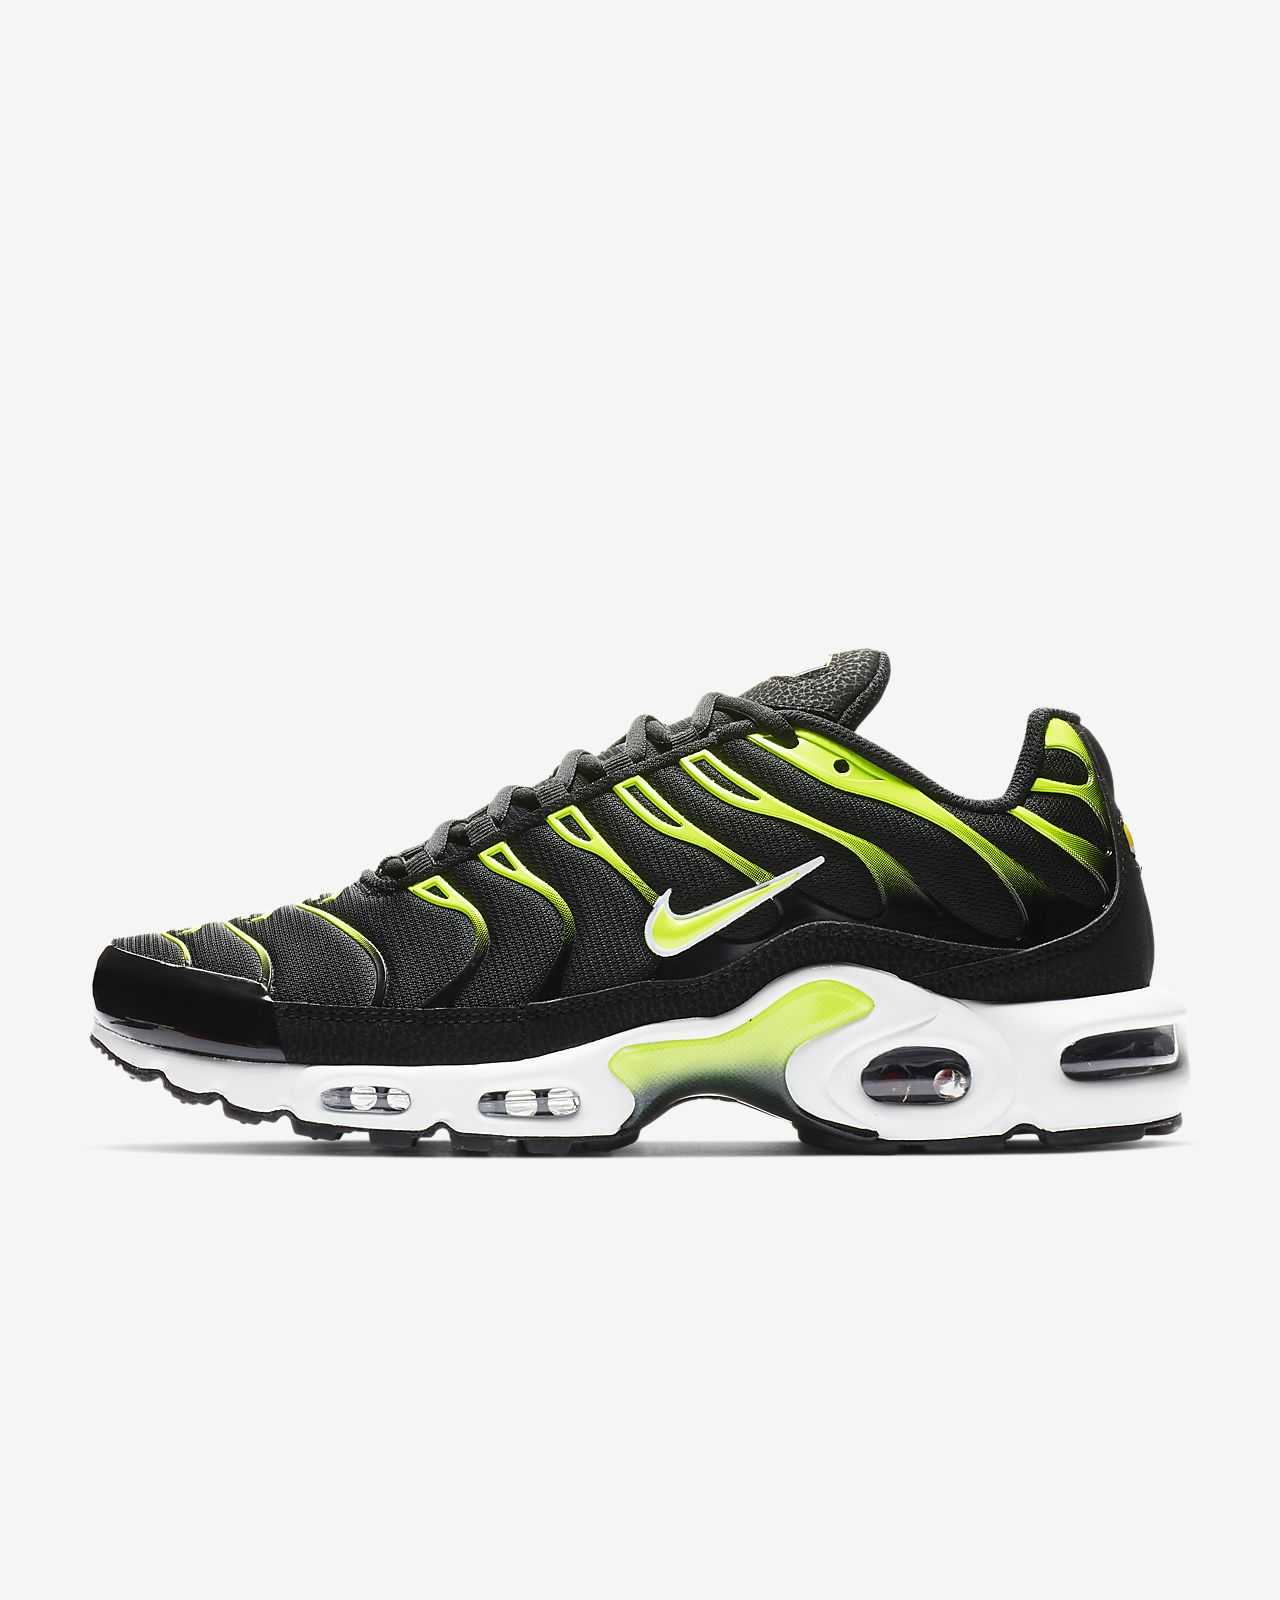 a1054efe4a Nike Air Max Plus Men's Shoe. Nike.com CA